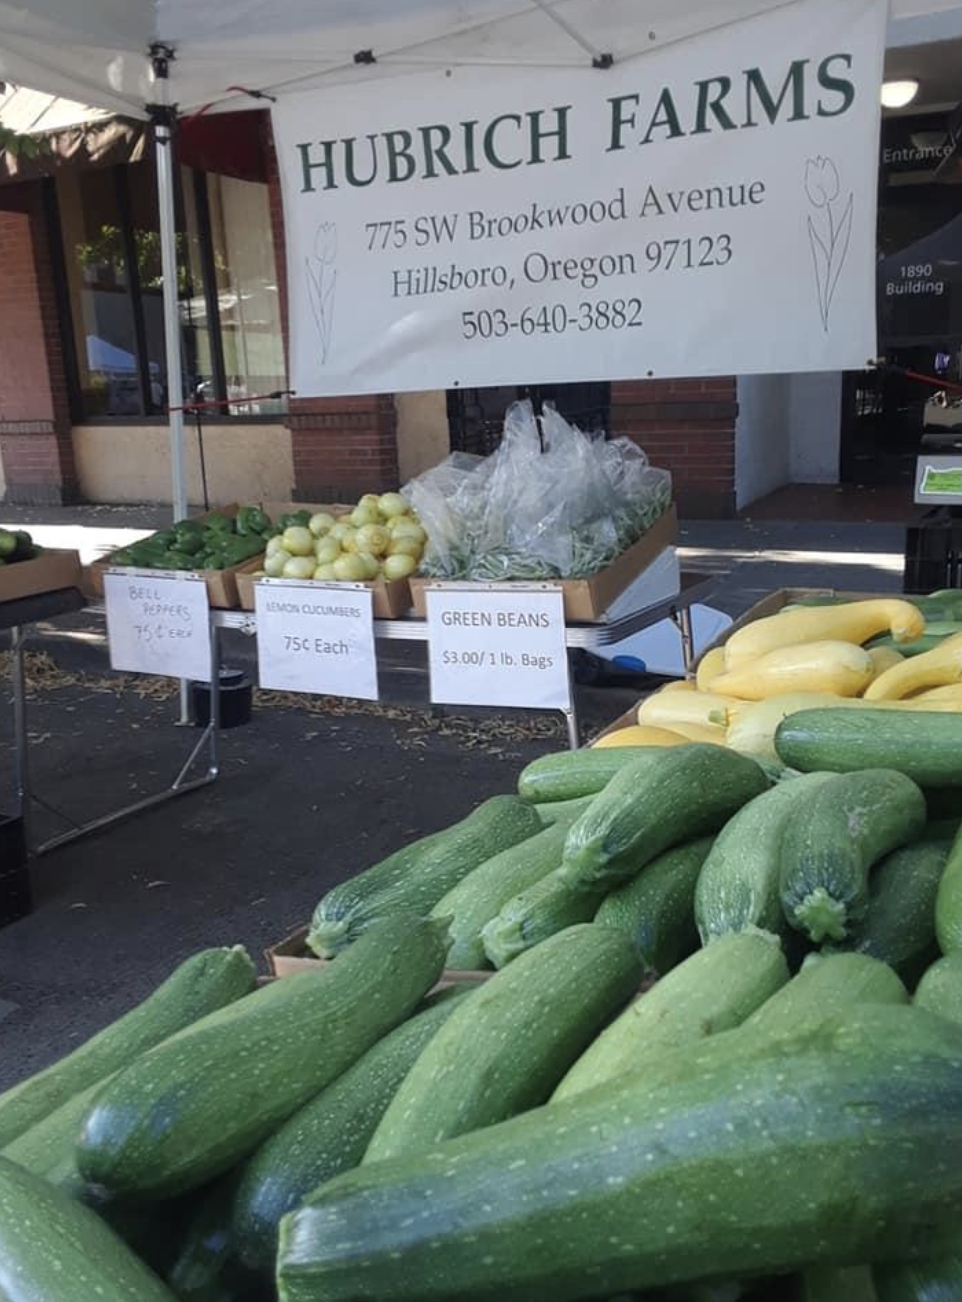 Plants and product from Hubrich Farms at the Downtown Hillsboro Farmers' Market.